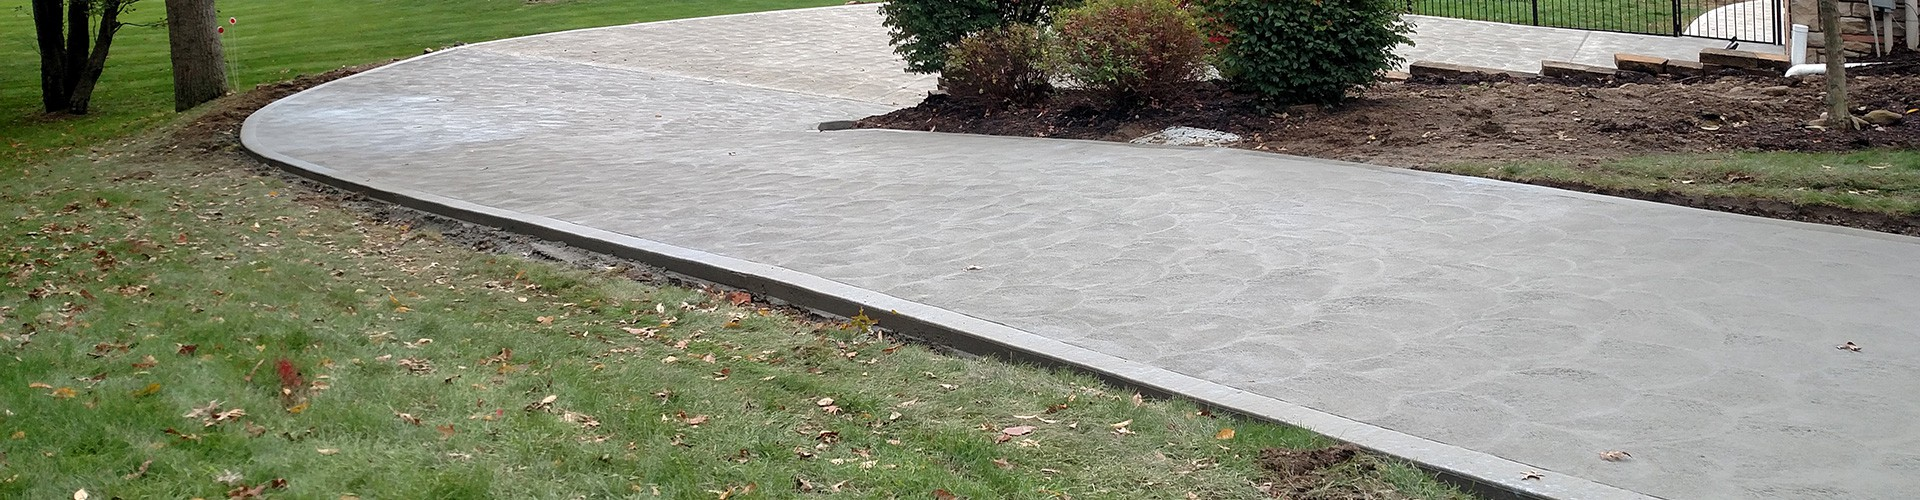 curved_and_sloping_residential_driveway